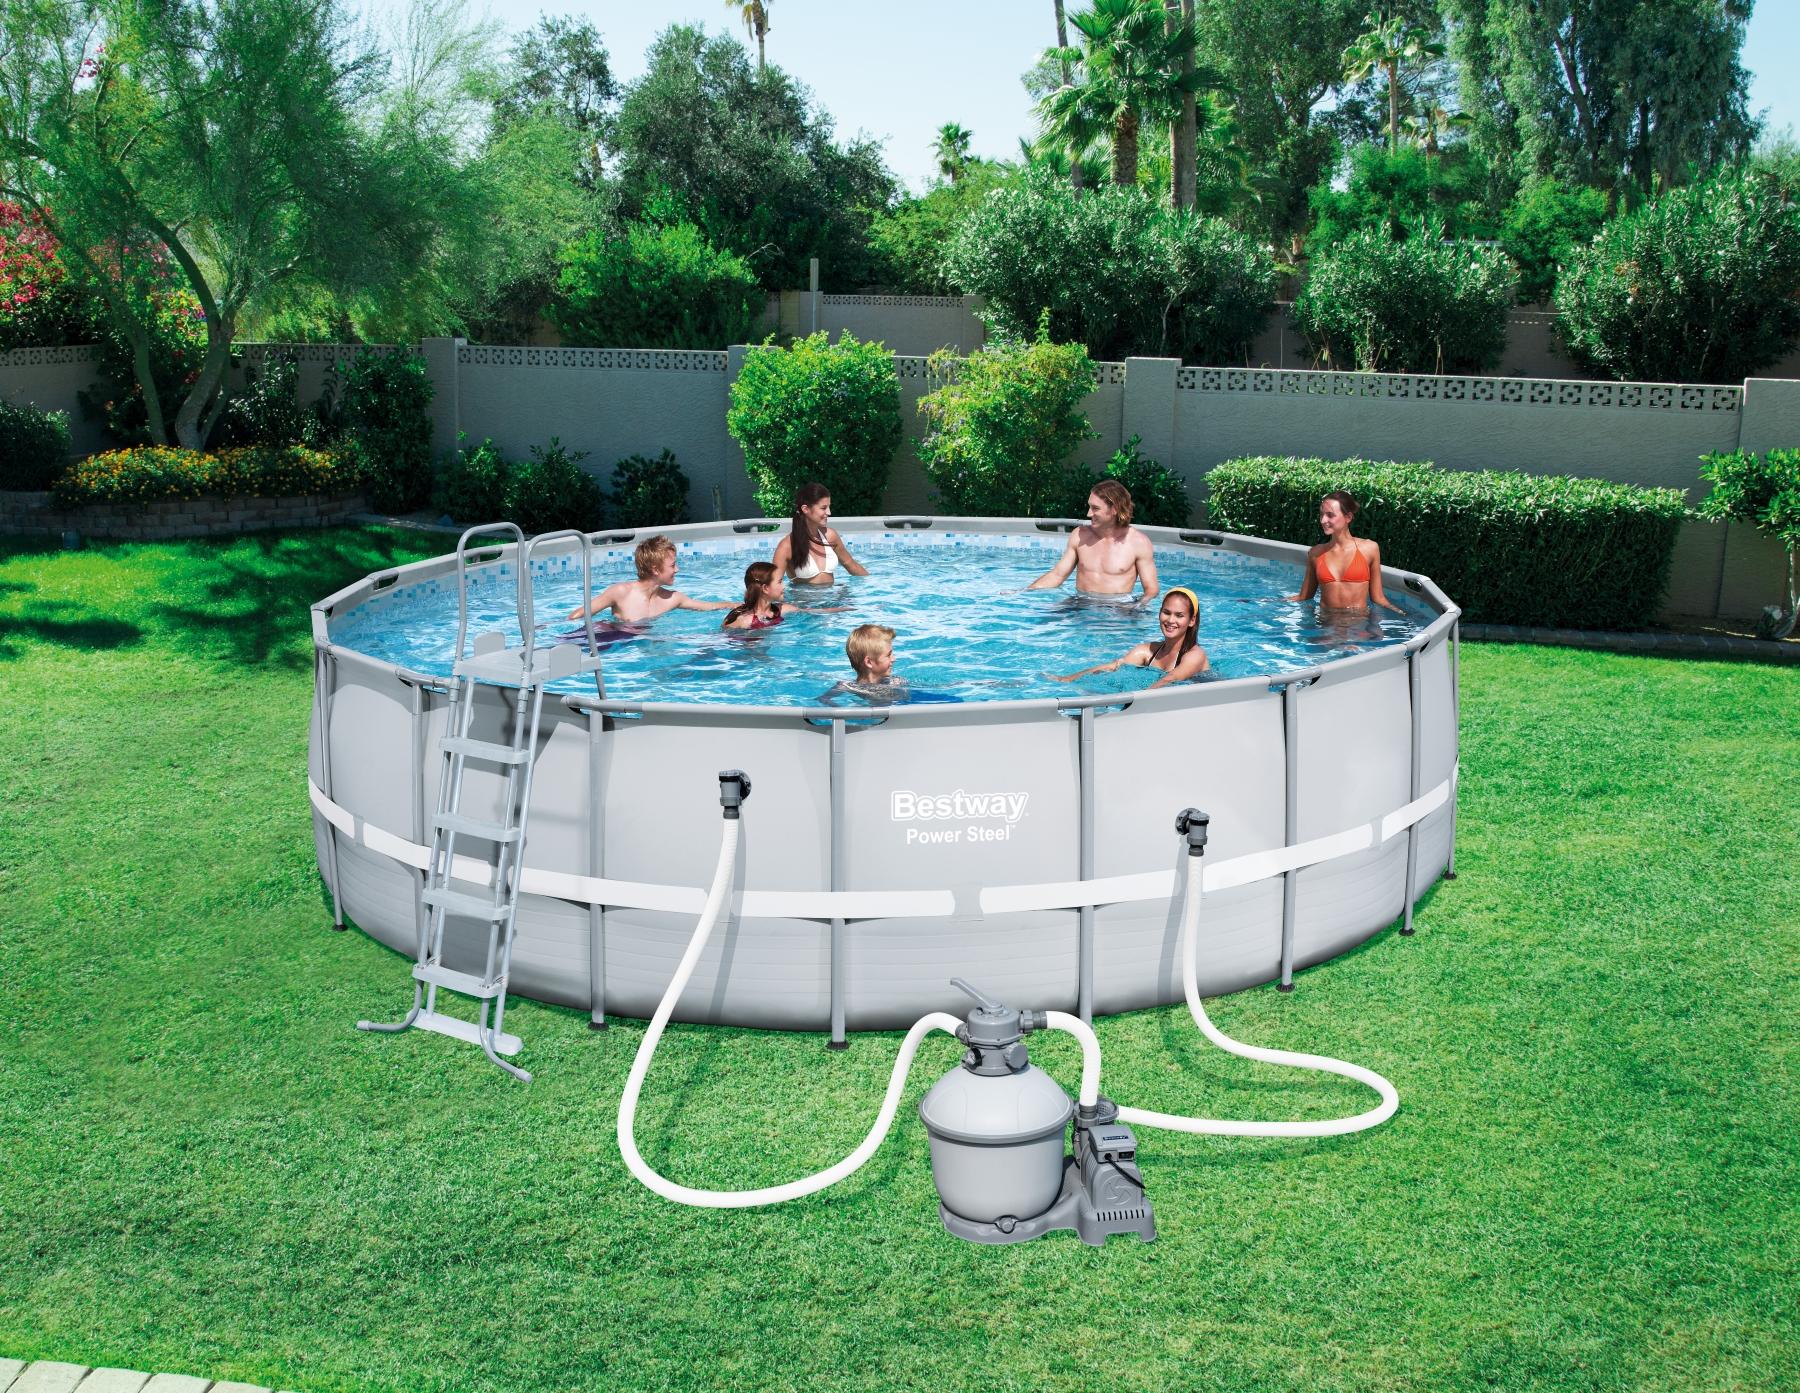 Piscina fuori terra rotonda bestway 56464 cm 549 x 132 for Piscine fuori terra best way